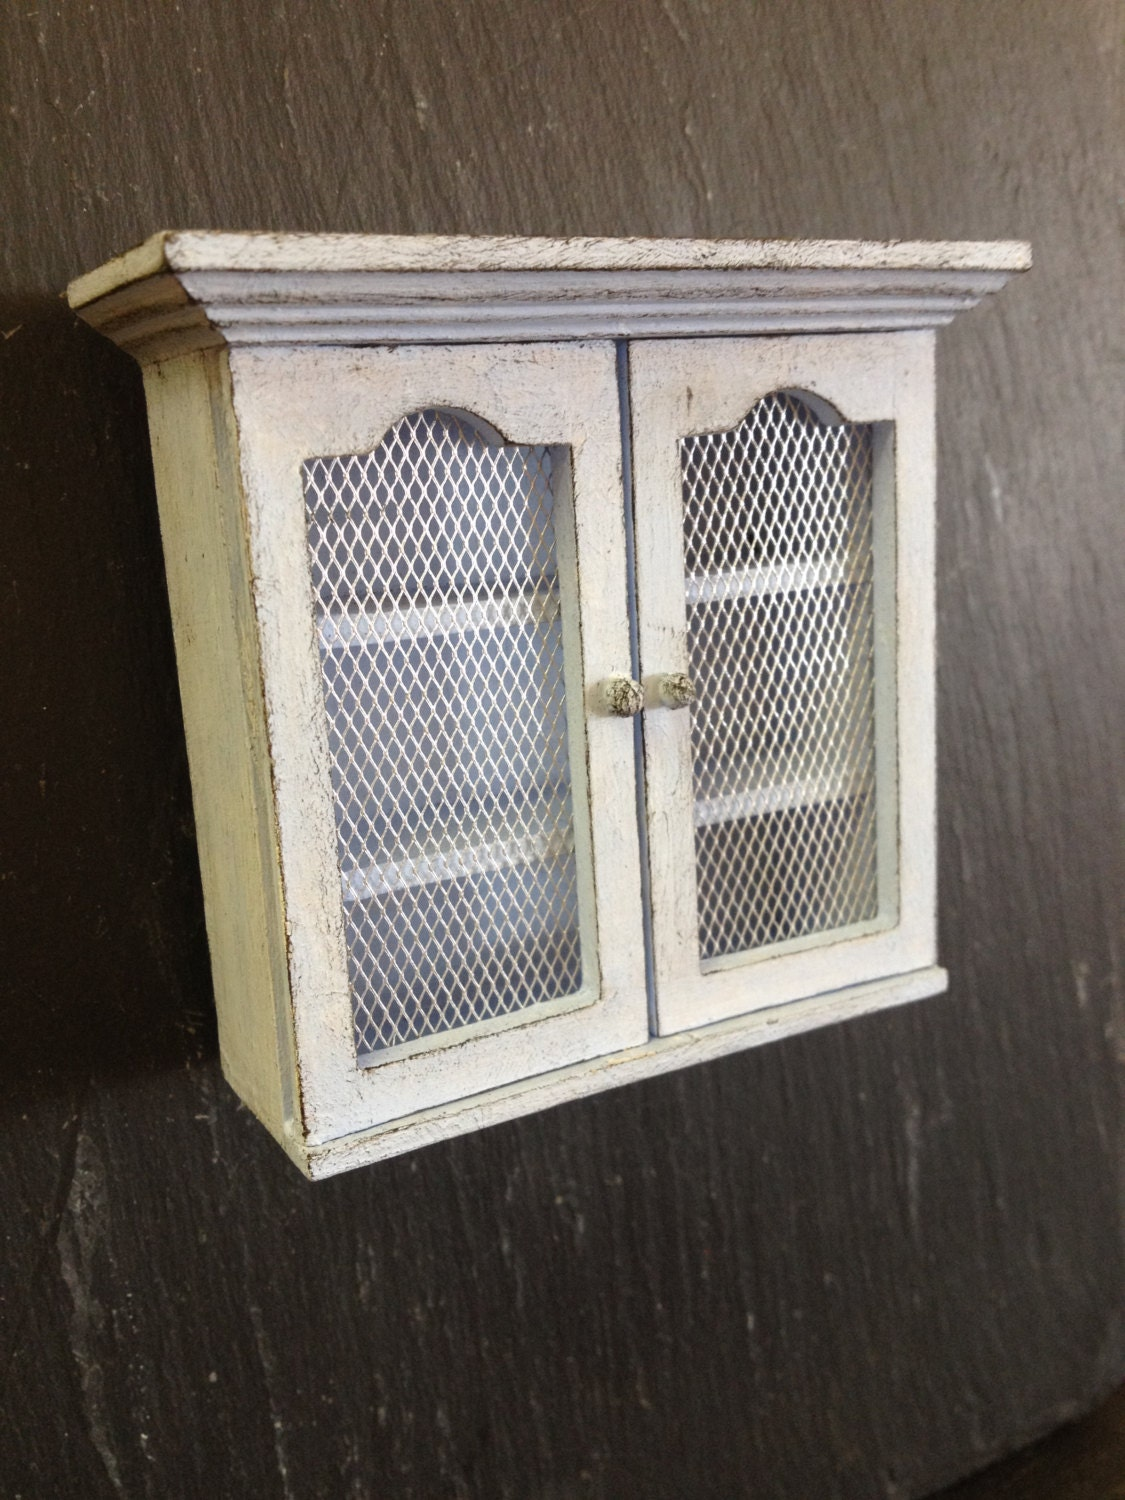 Dolls House Miniature Chicken Wire Kitchen Cabinet